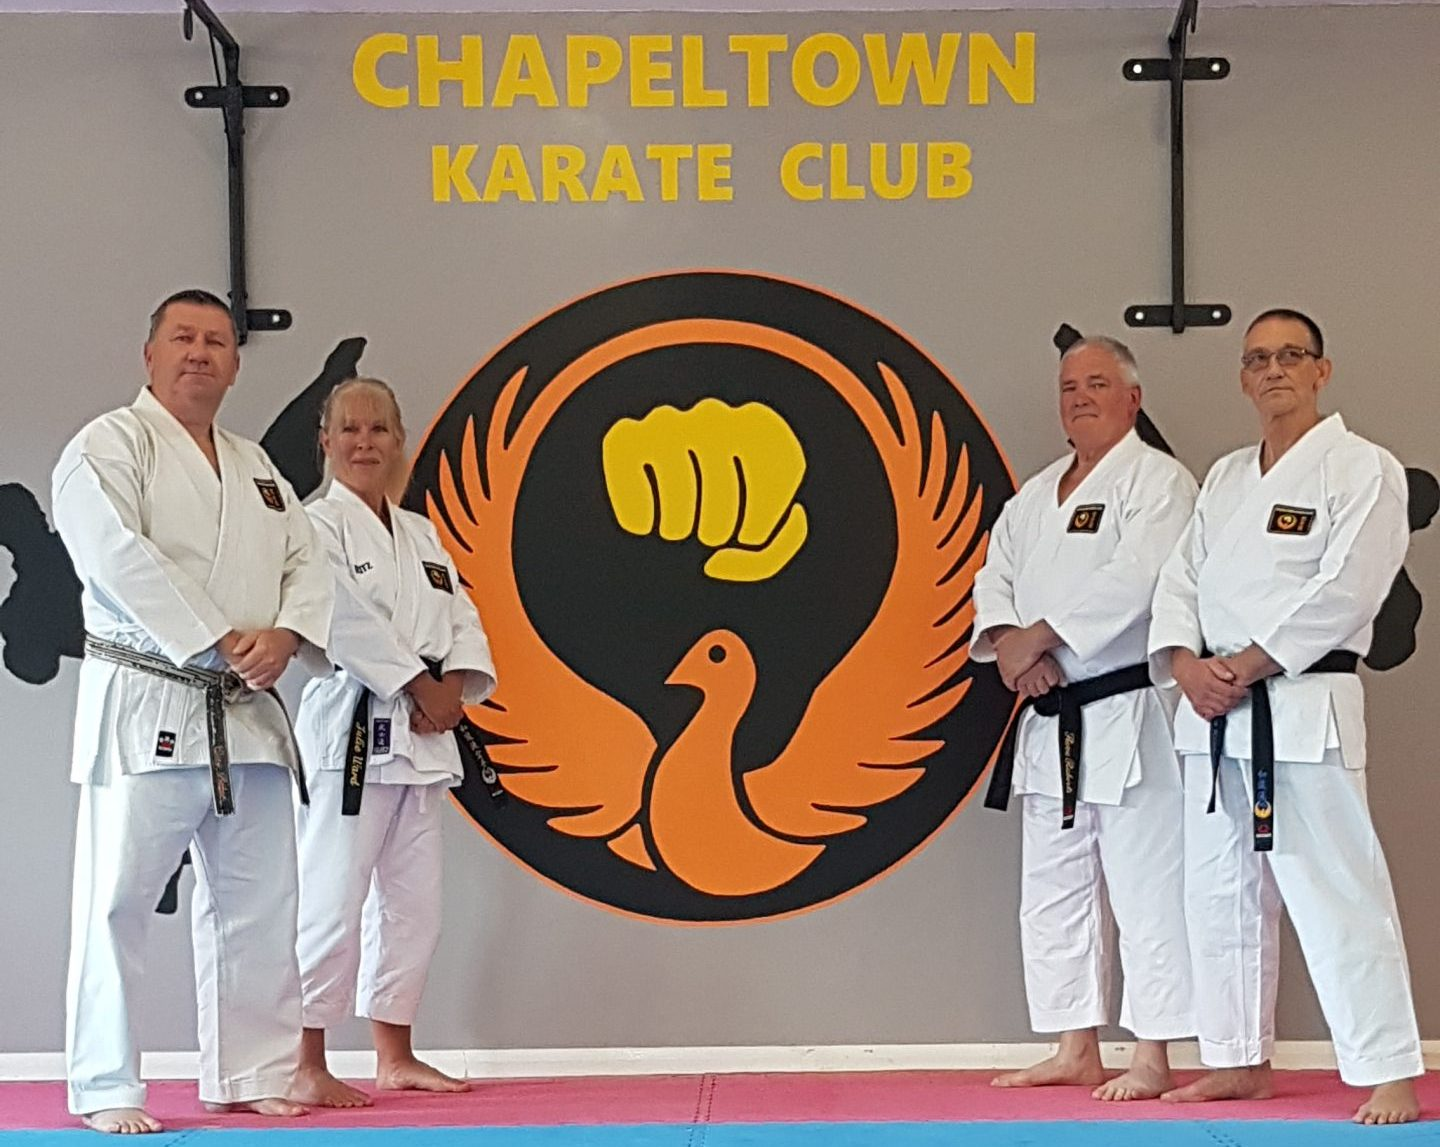 Chapeltown Karate Club